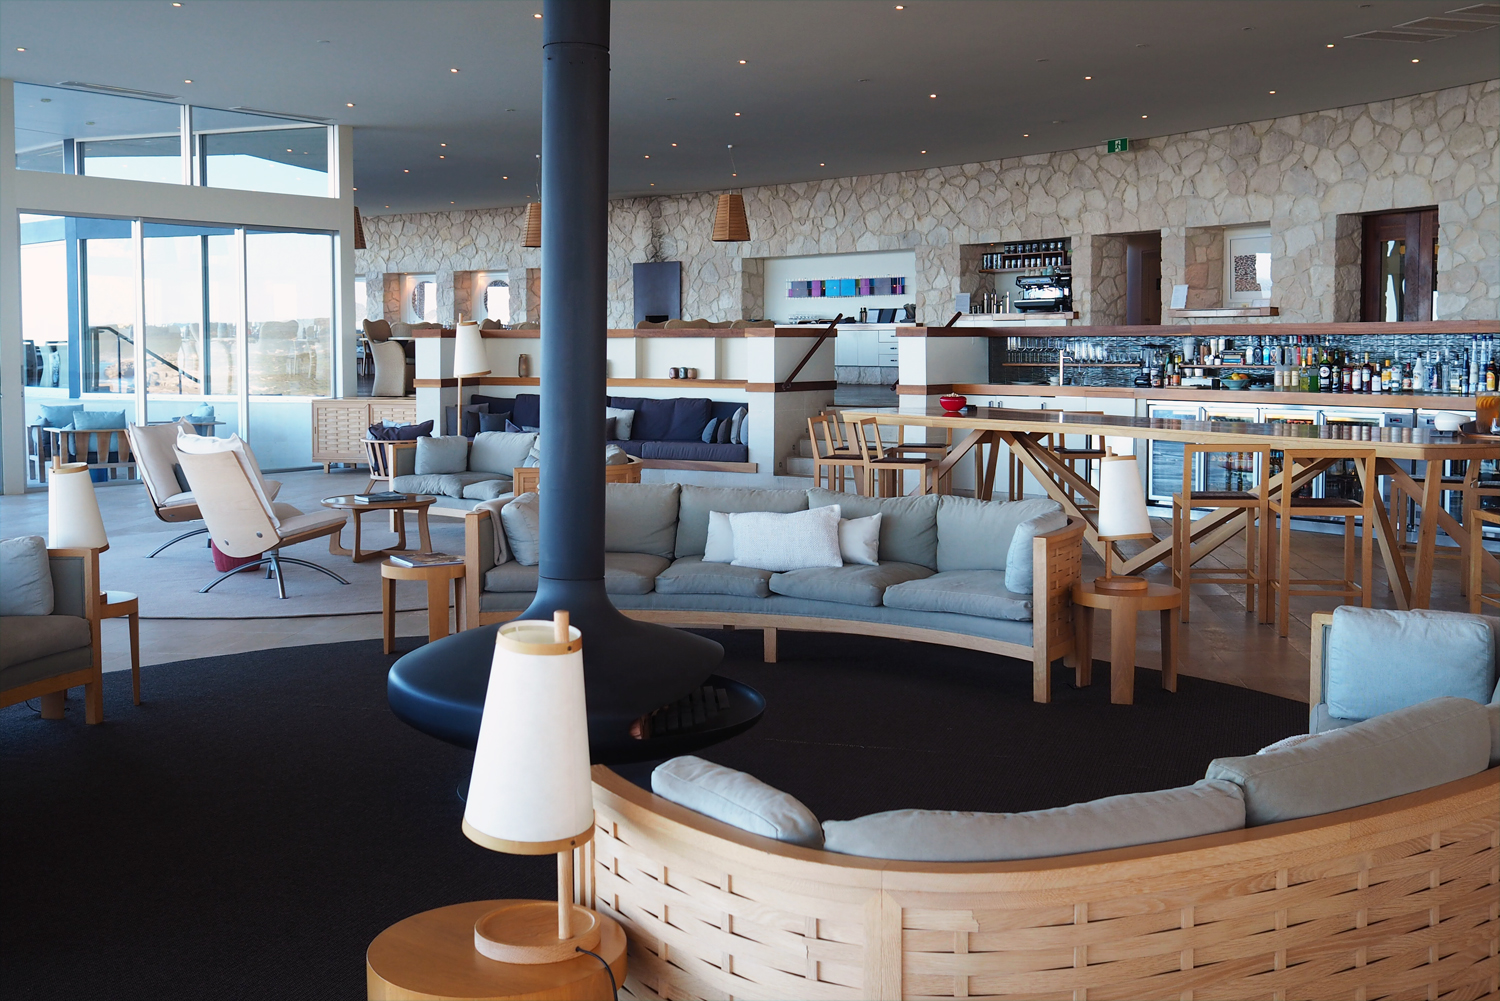 The main lounge and bar area has a minimalist Scandi feel to it © Sarah Reid